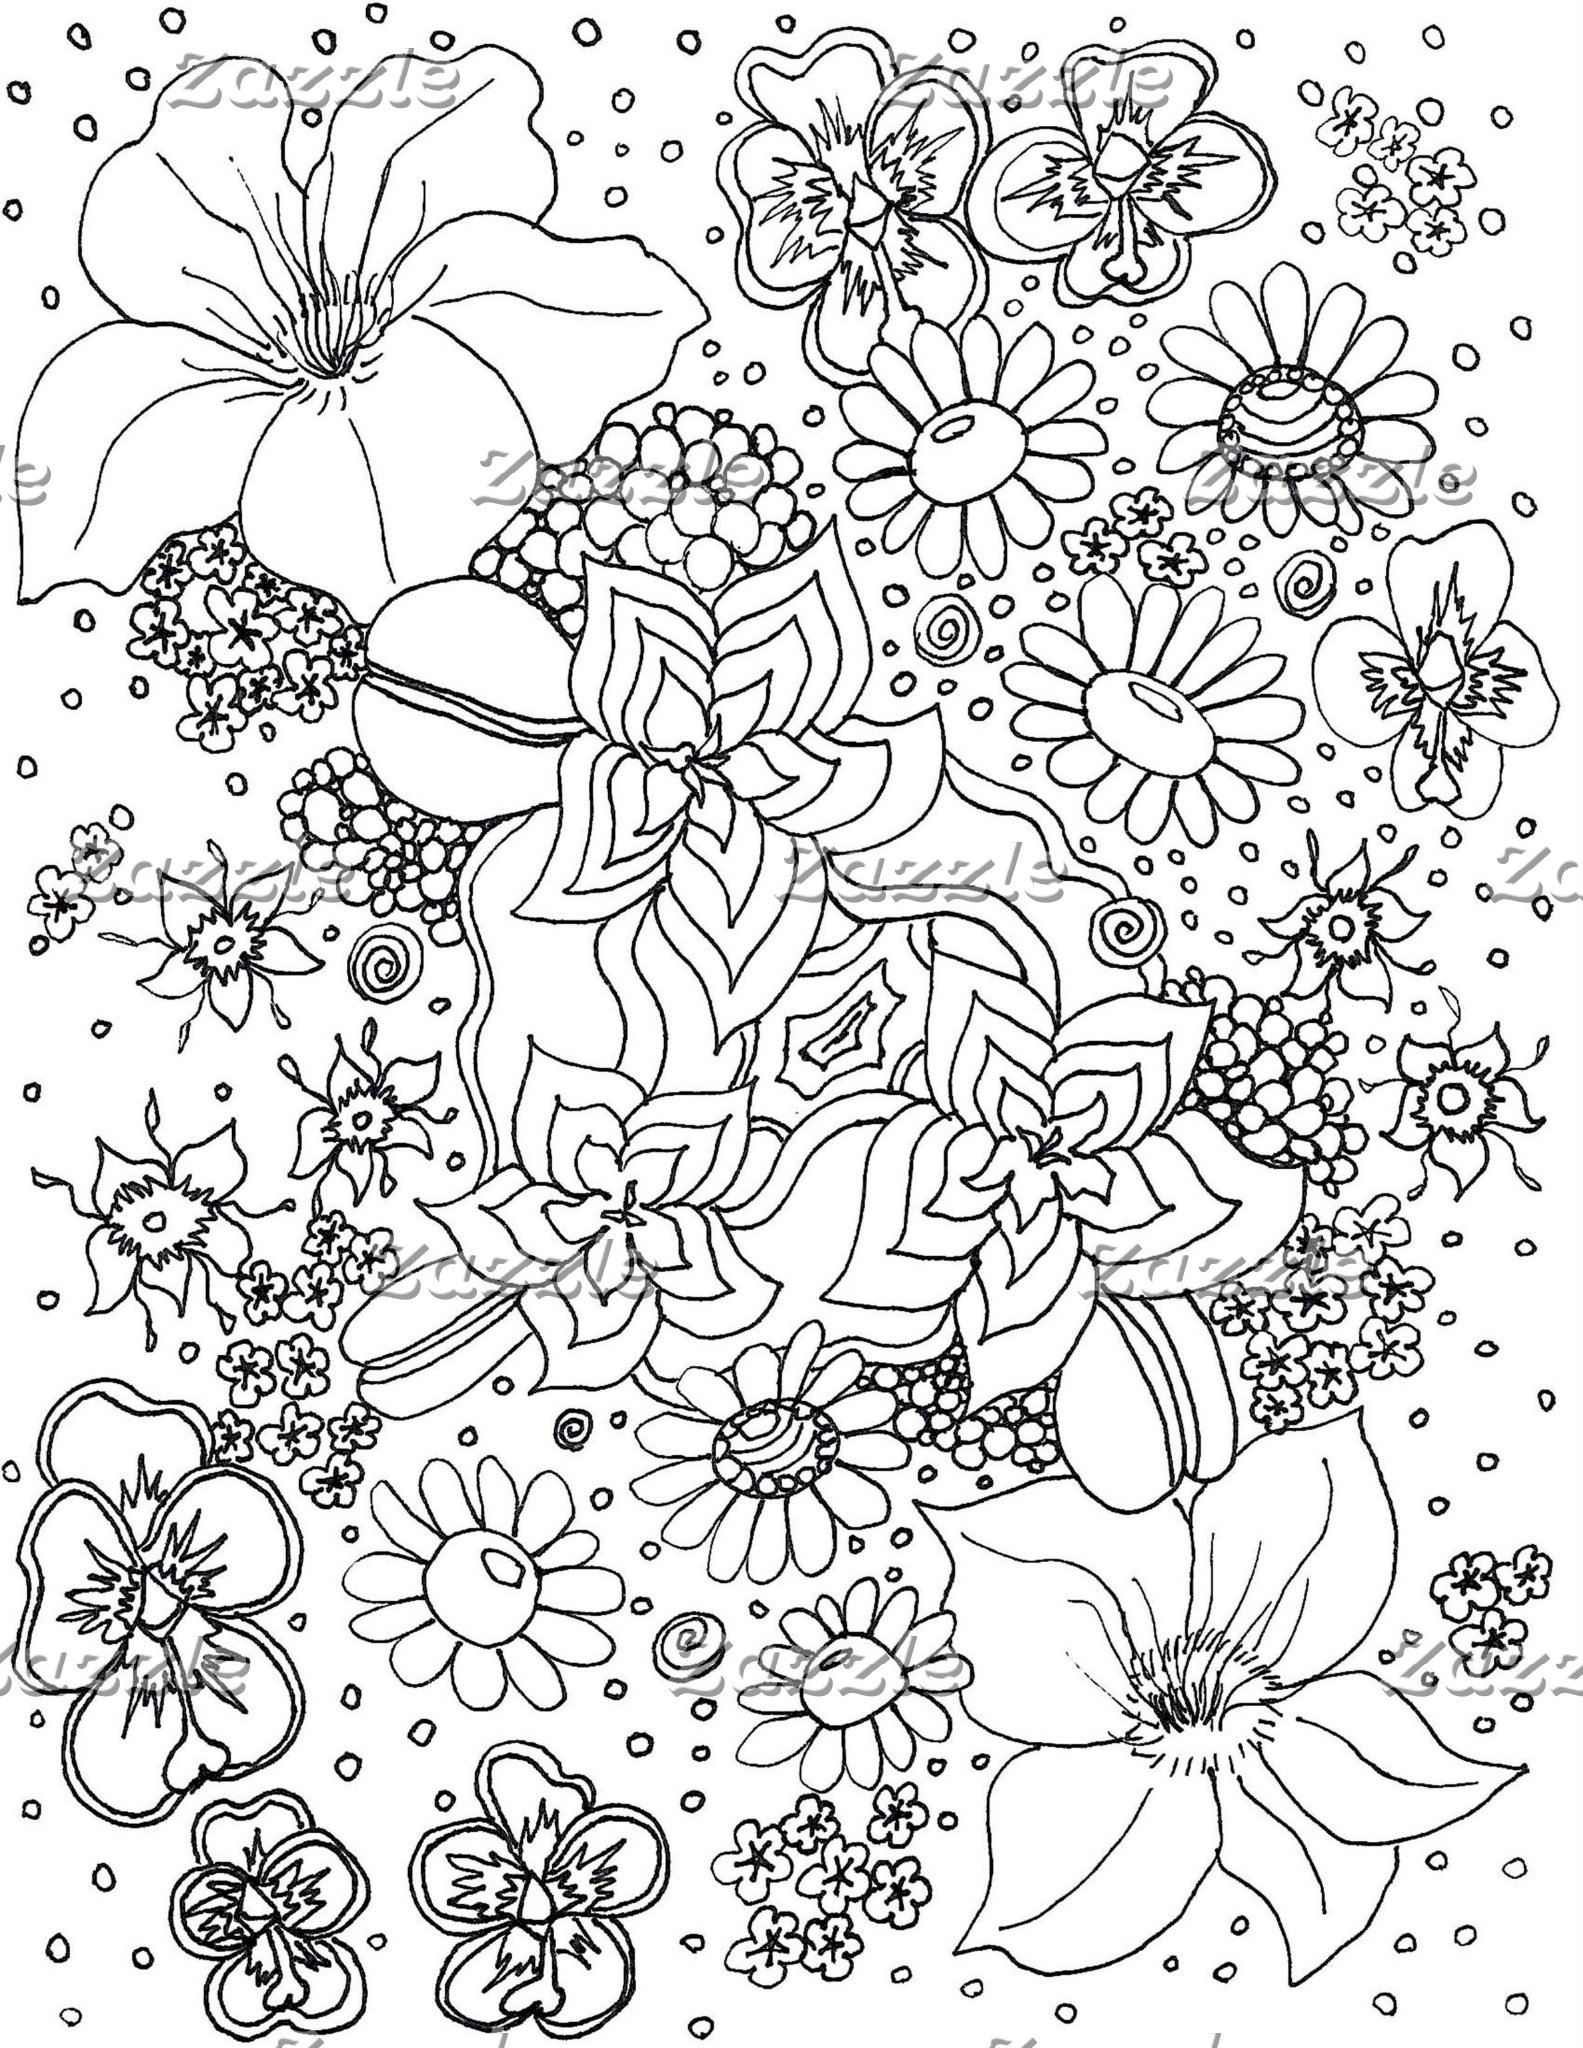 Conglomeration of Flowers